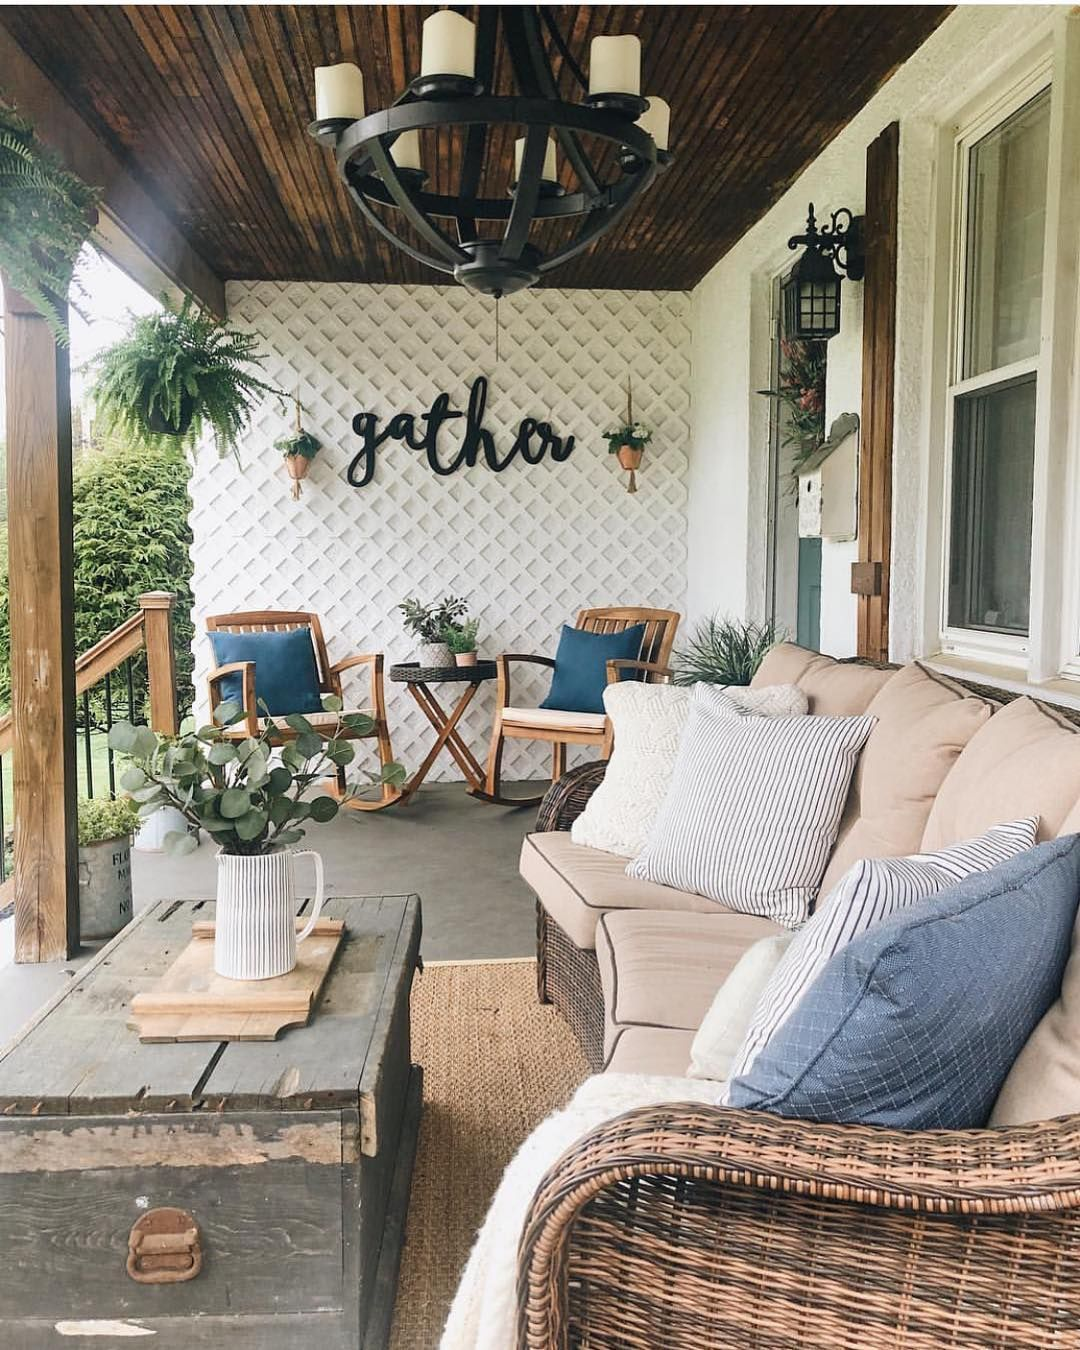 Best Rustic Farmhouse front porch decorating ideas on a budget #frontporchdecorideas #farmhouseporchdecor #porchfurniture #rusticporchideas